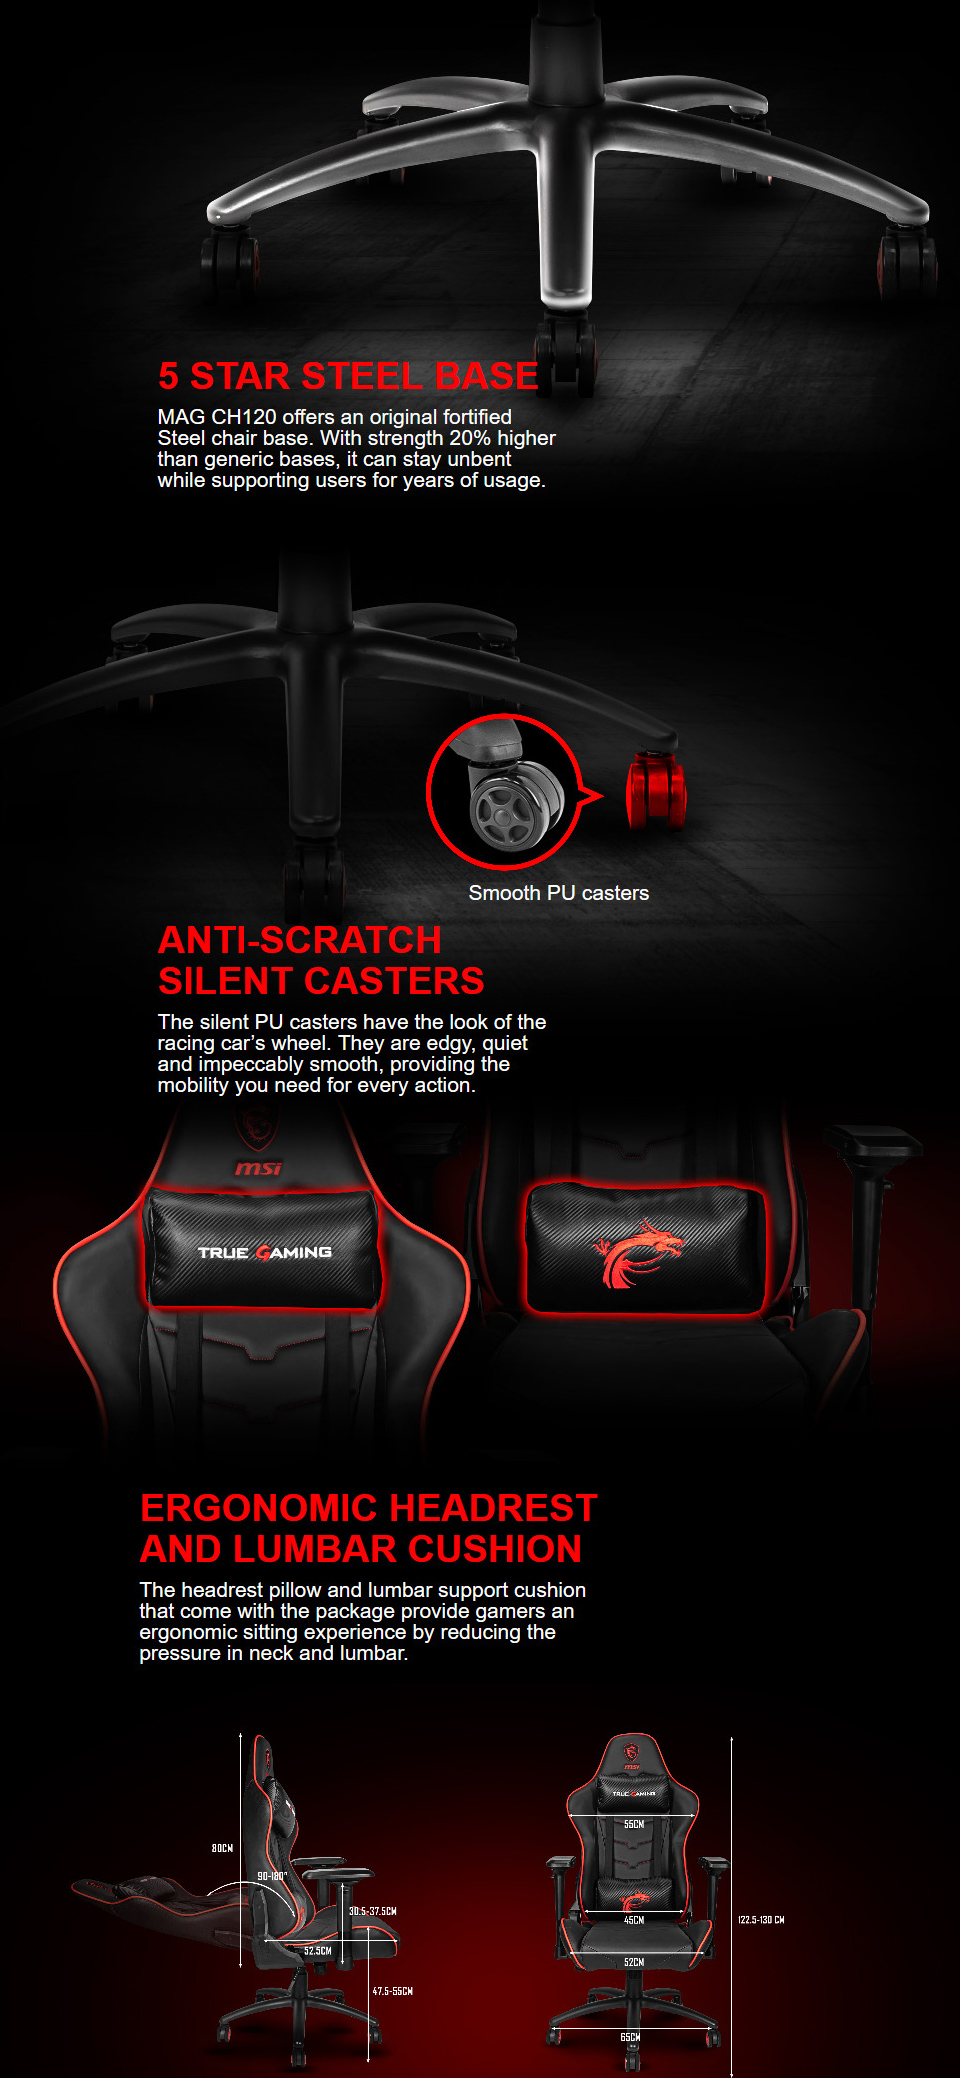 MSI MAG-CH120X Gaming Chair features 3